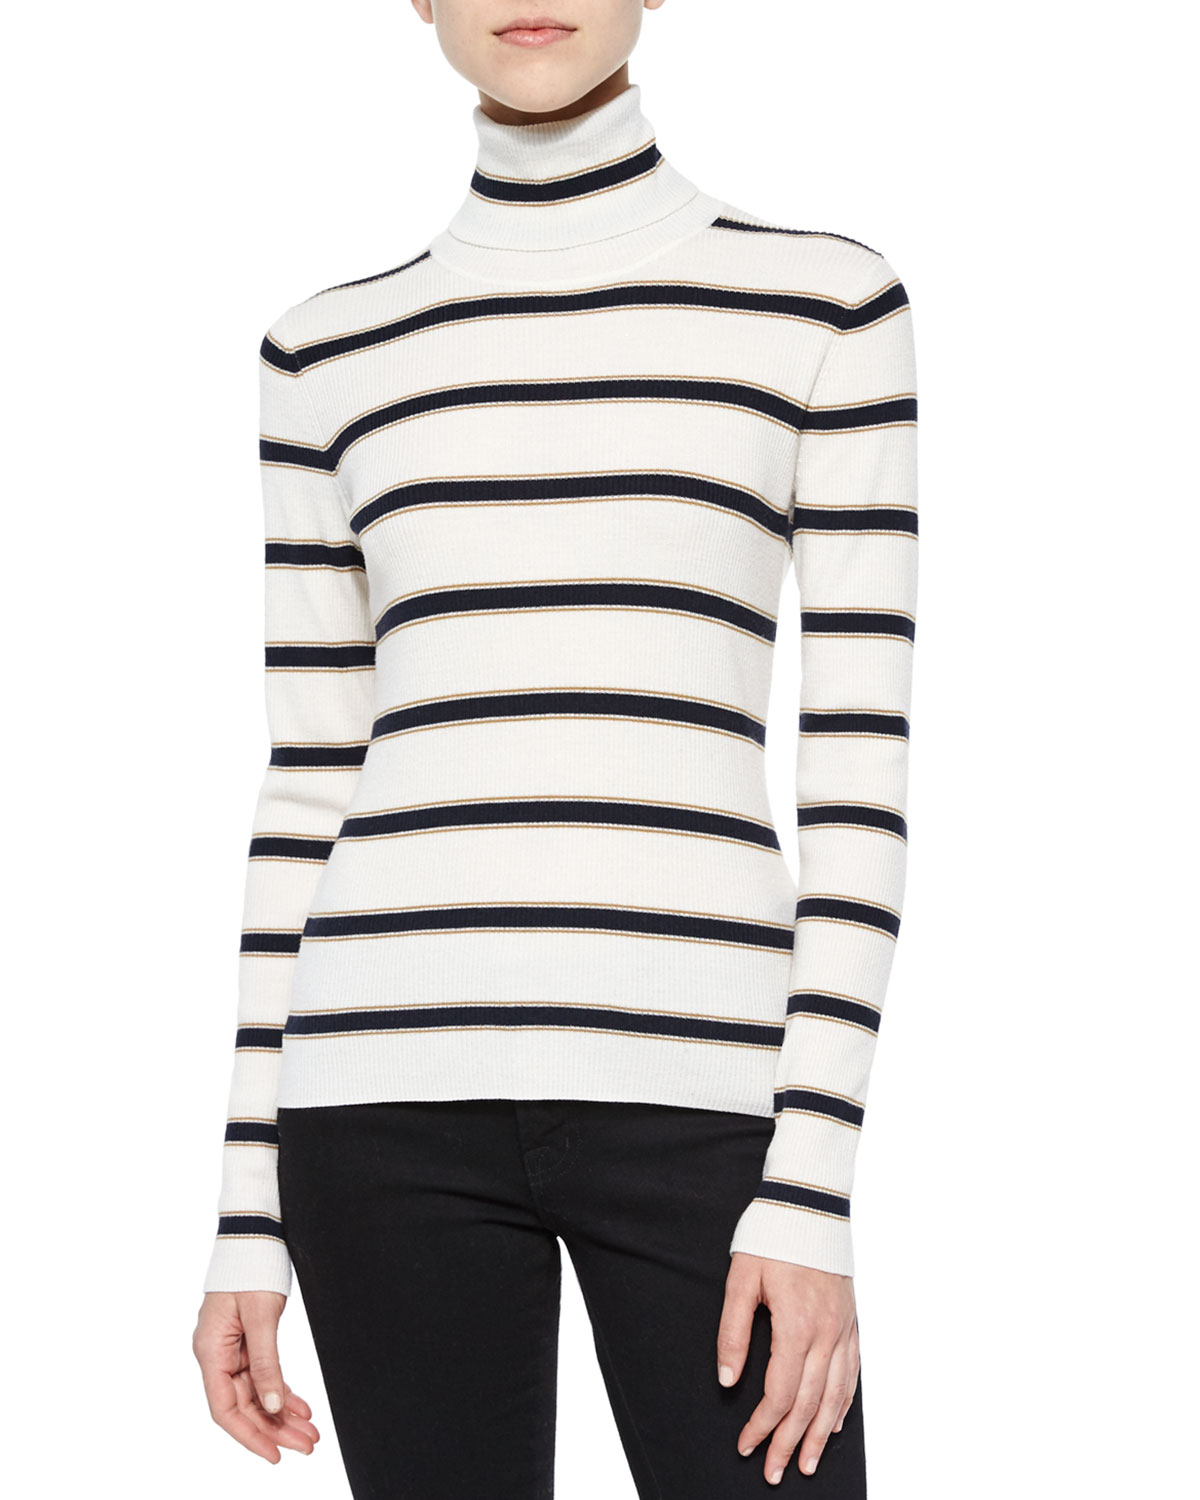 Ollie Striped Turtleneck Sweater, Size: LARGE, White/Navy/Tan - A.L.C.